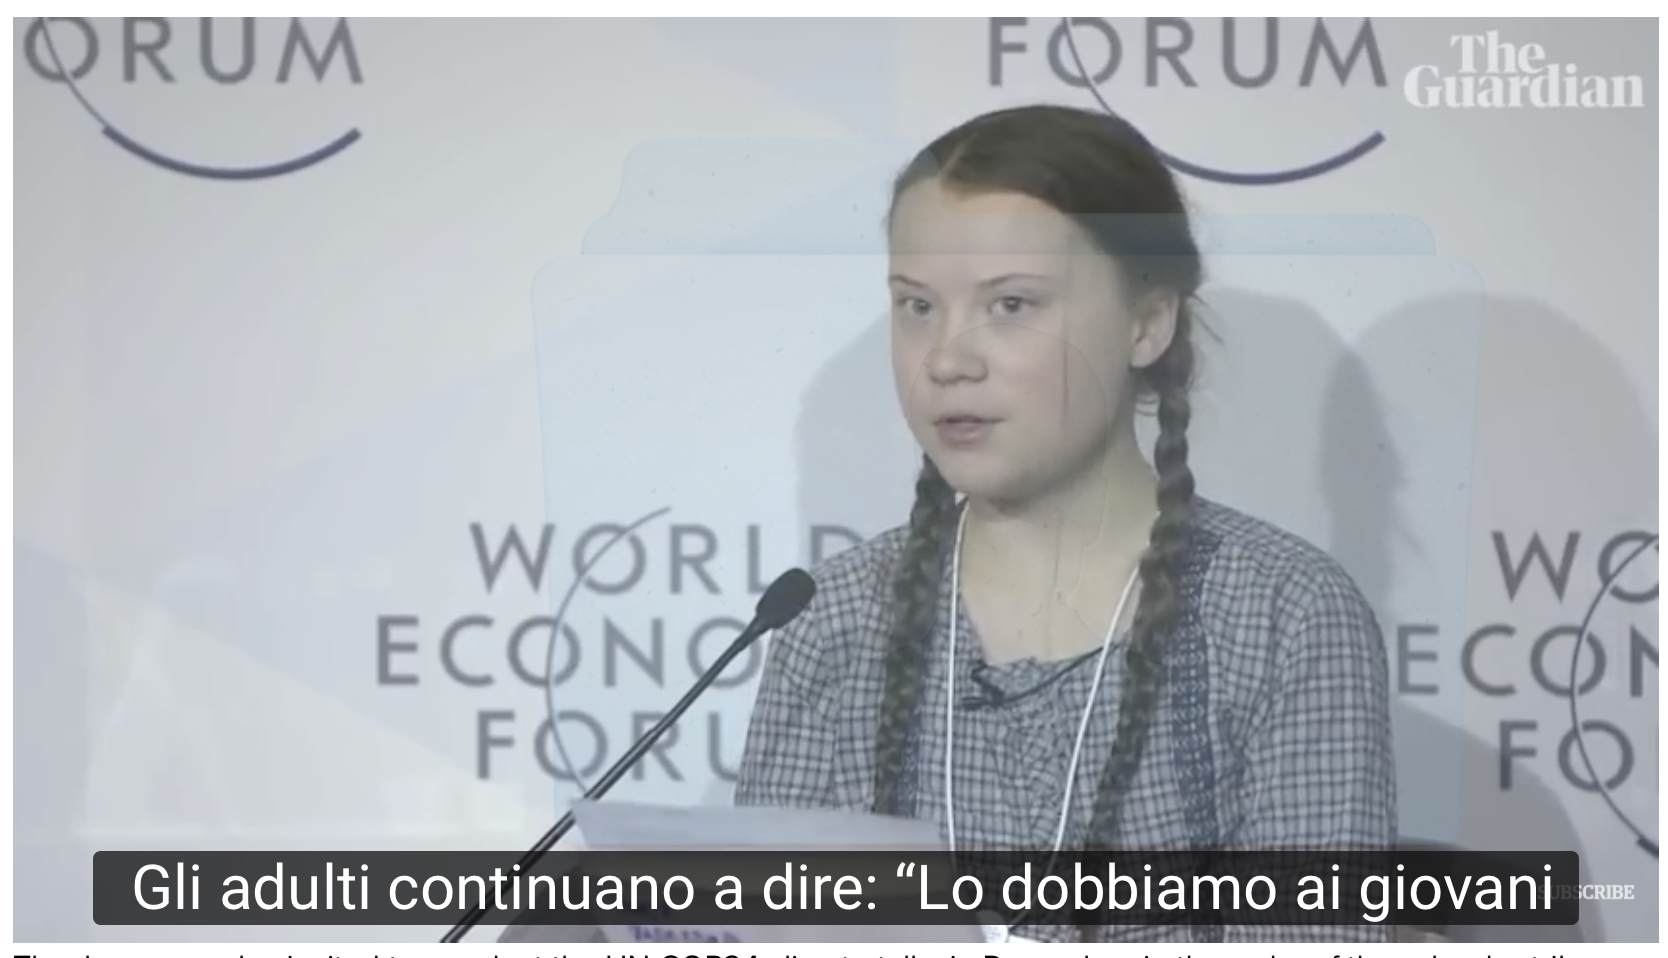 greta thunberg Davos UN COP24 World Economic Forum - Gennaio 2019 una boccata di ossigeno